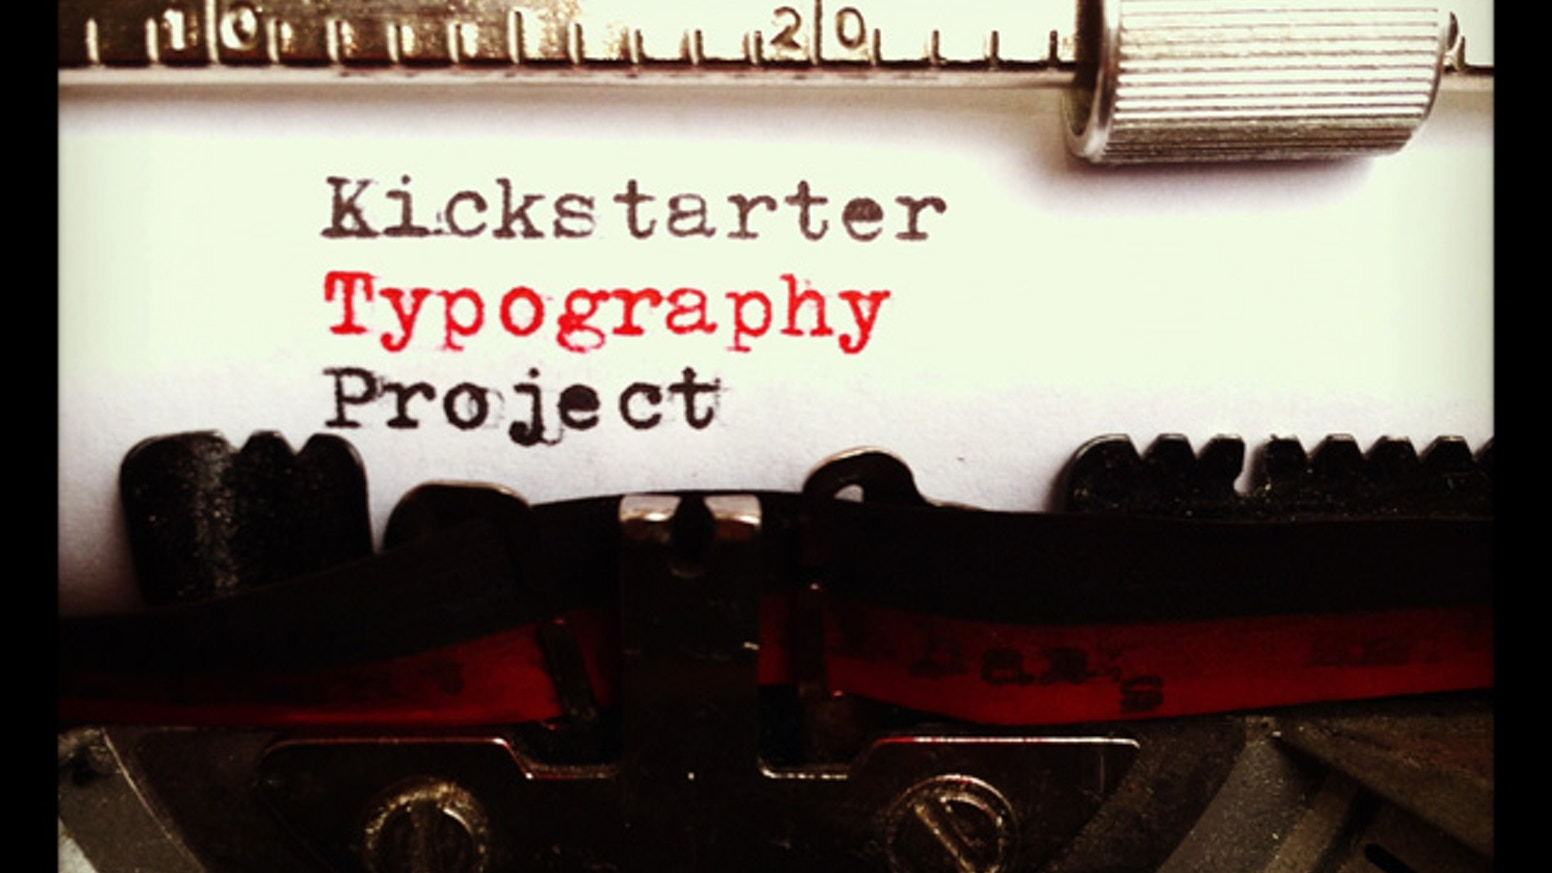 A typography design project inspired by my typewriter and other creative musings from contributors like you